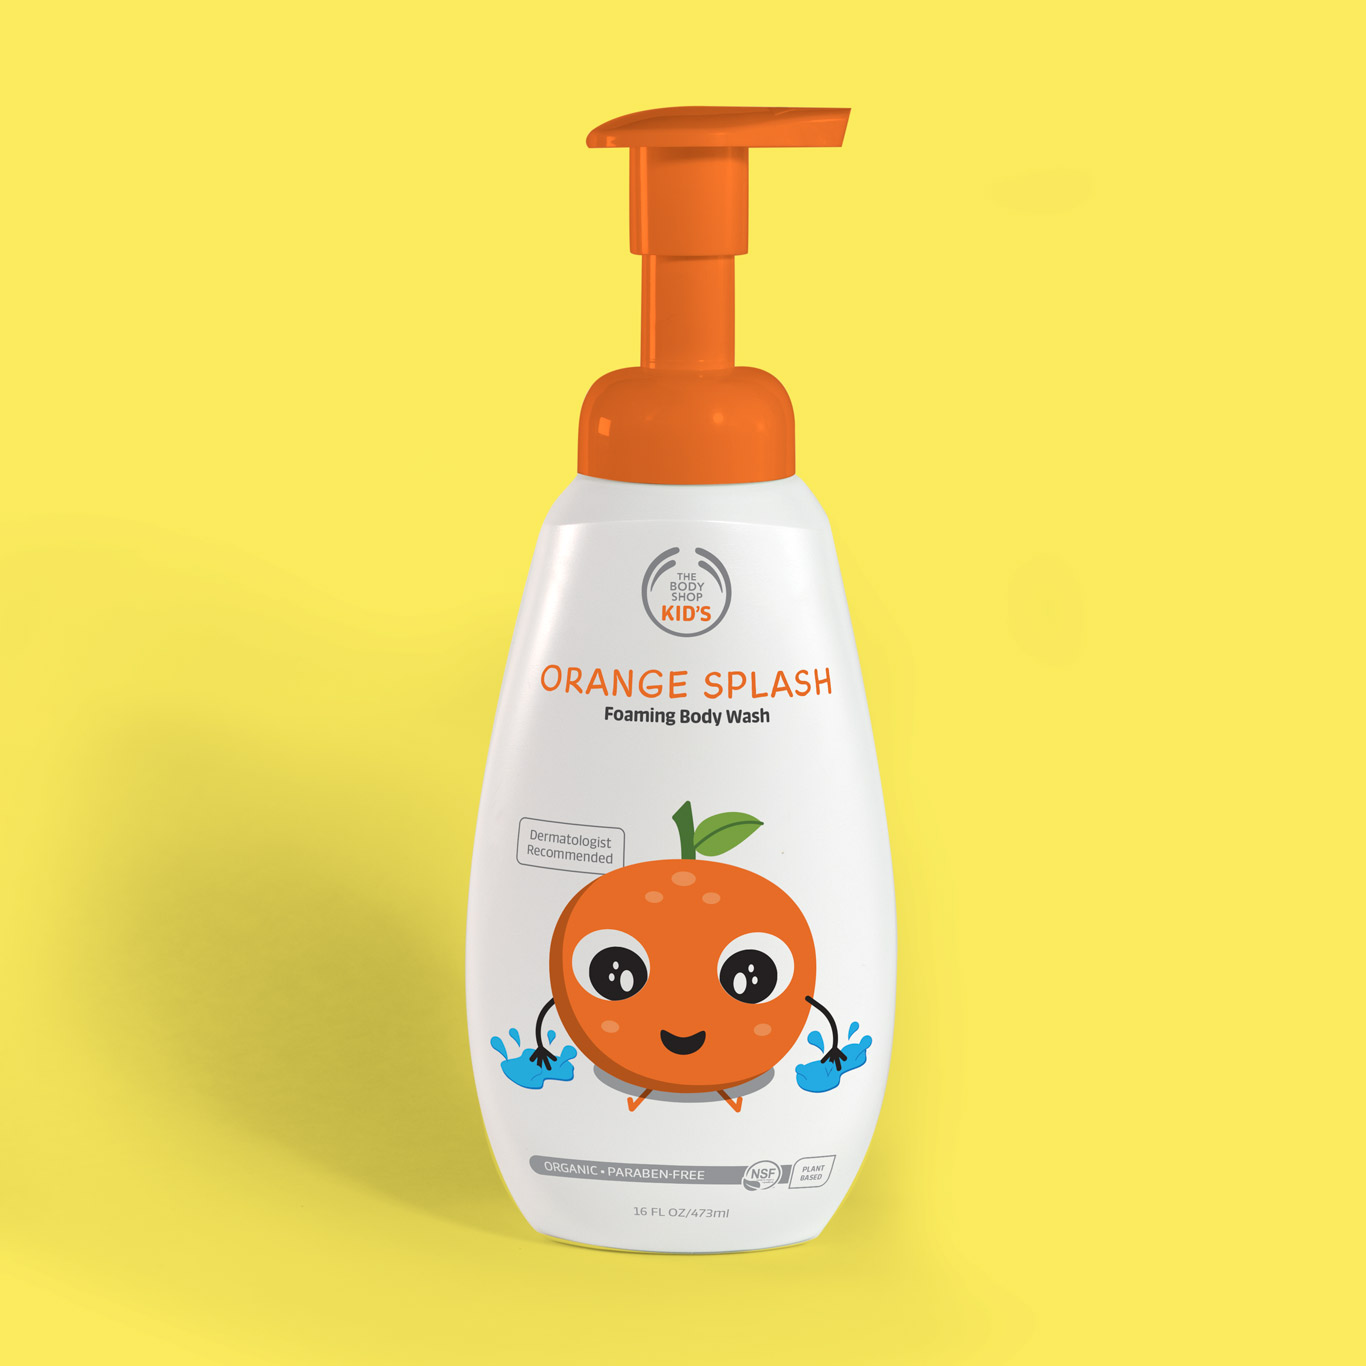 Orange Splash soap pump